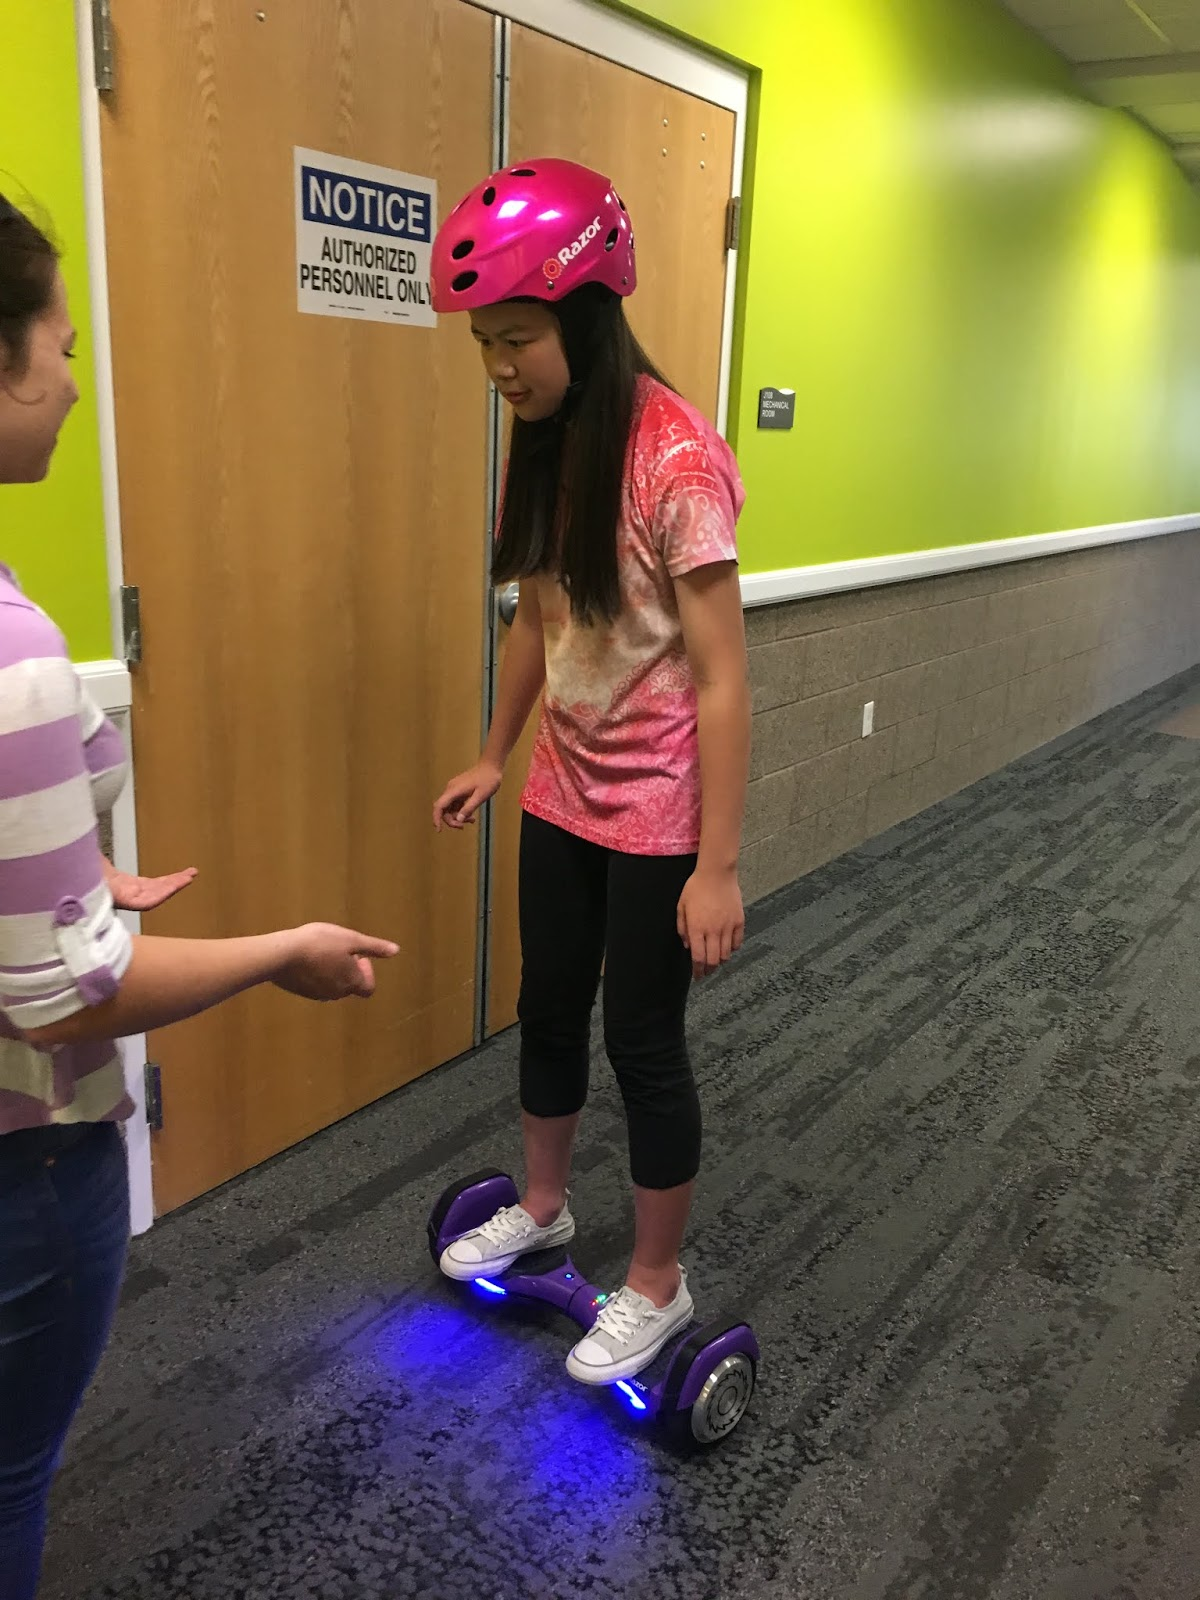 a female student moves forward on a hoverboard